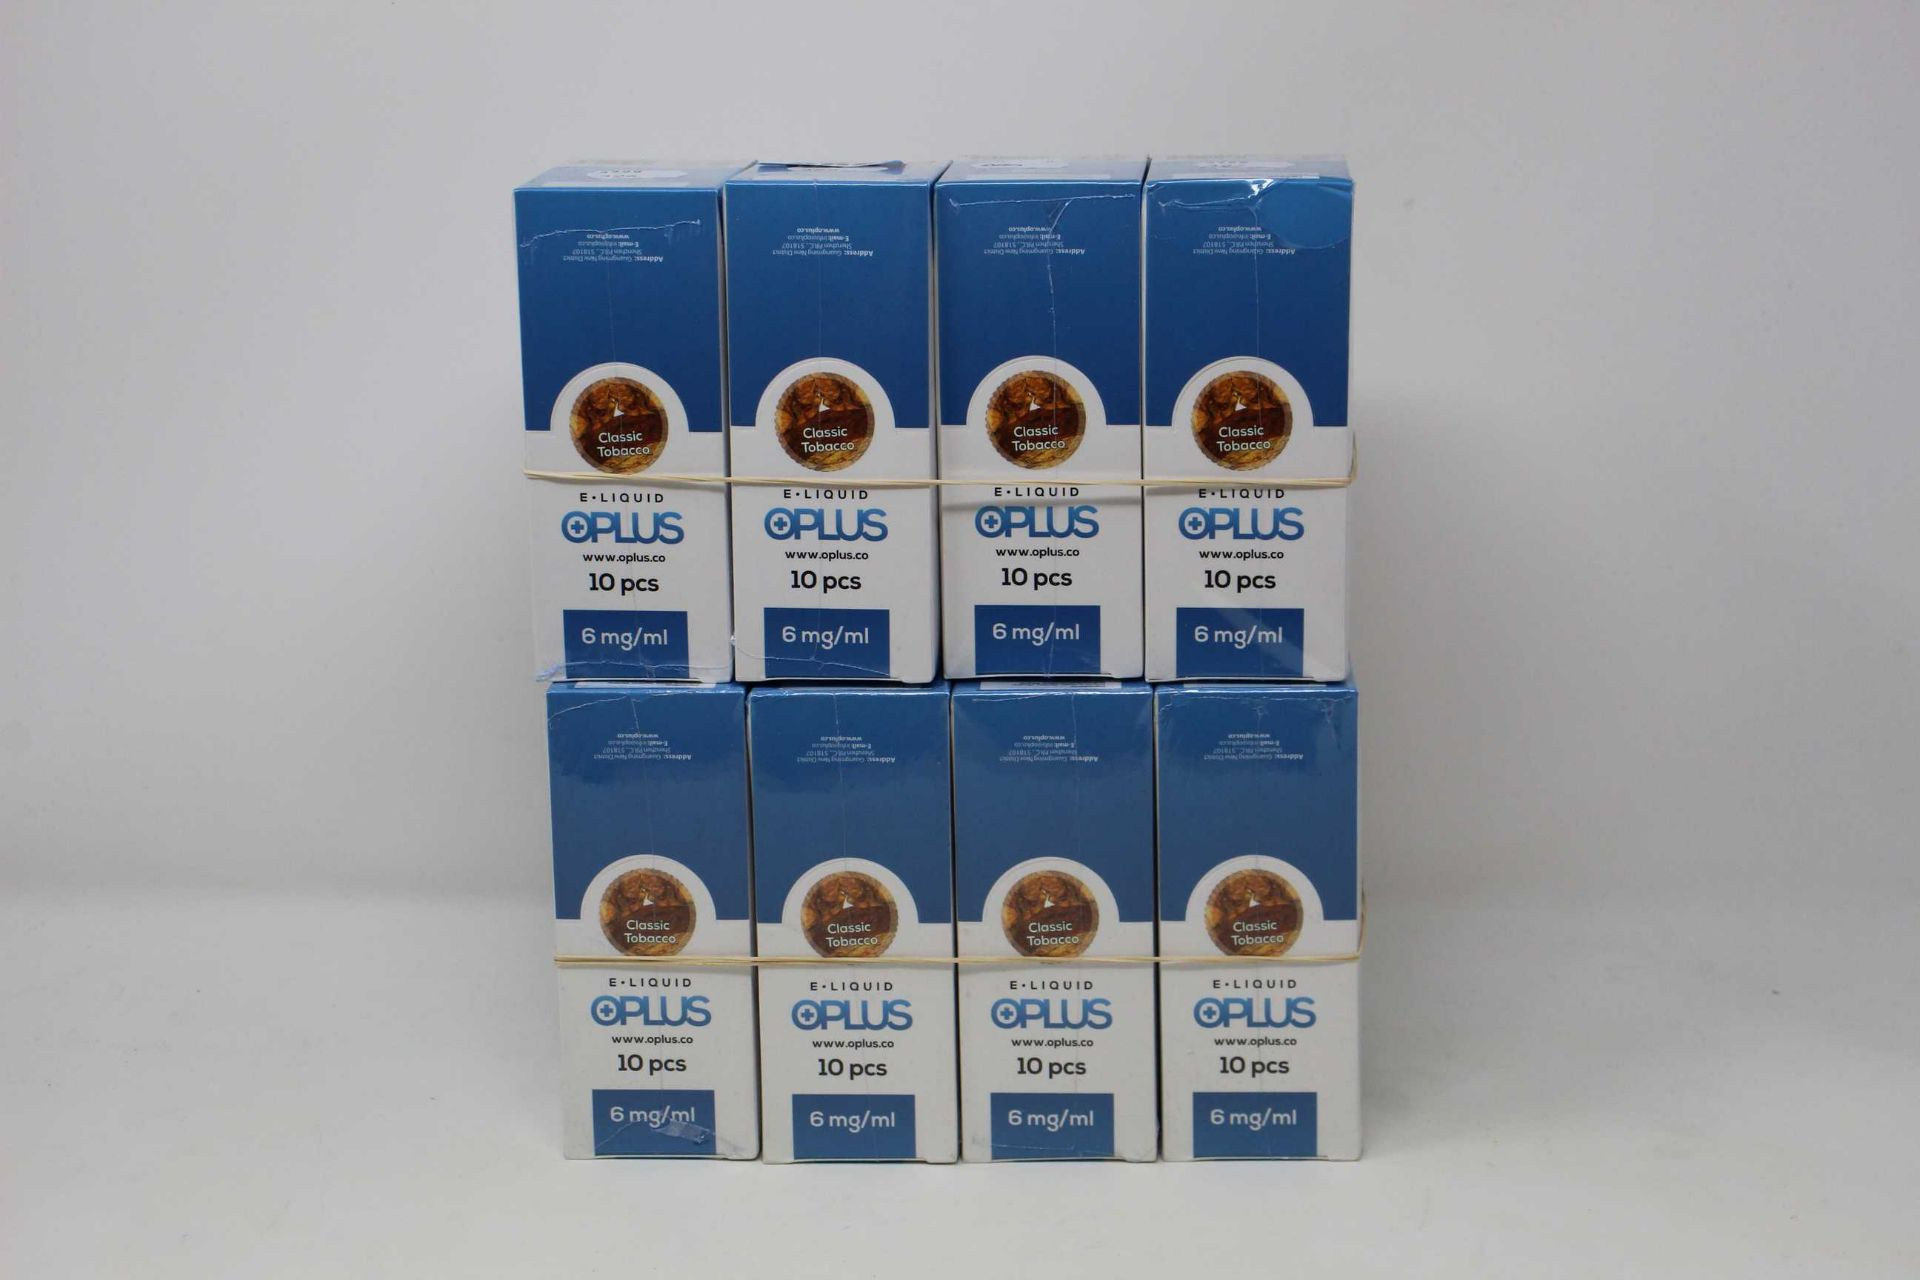 Eight boxes of ten (10ml) OPLus E-Liquid Classic Tobacco 6mg/ml (Over 18s only).